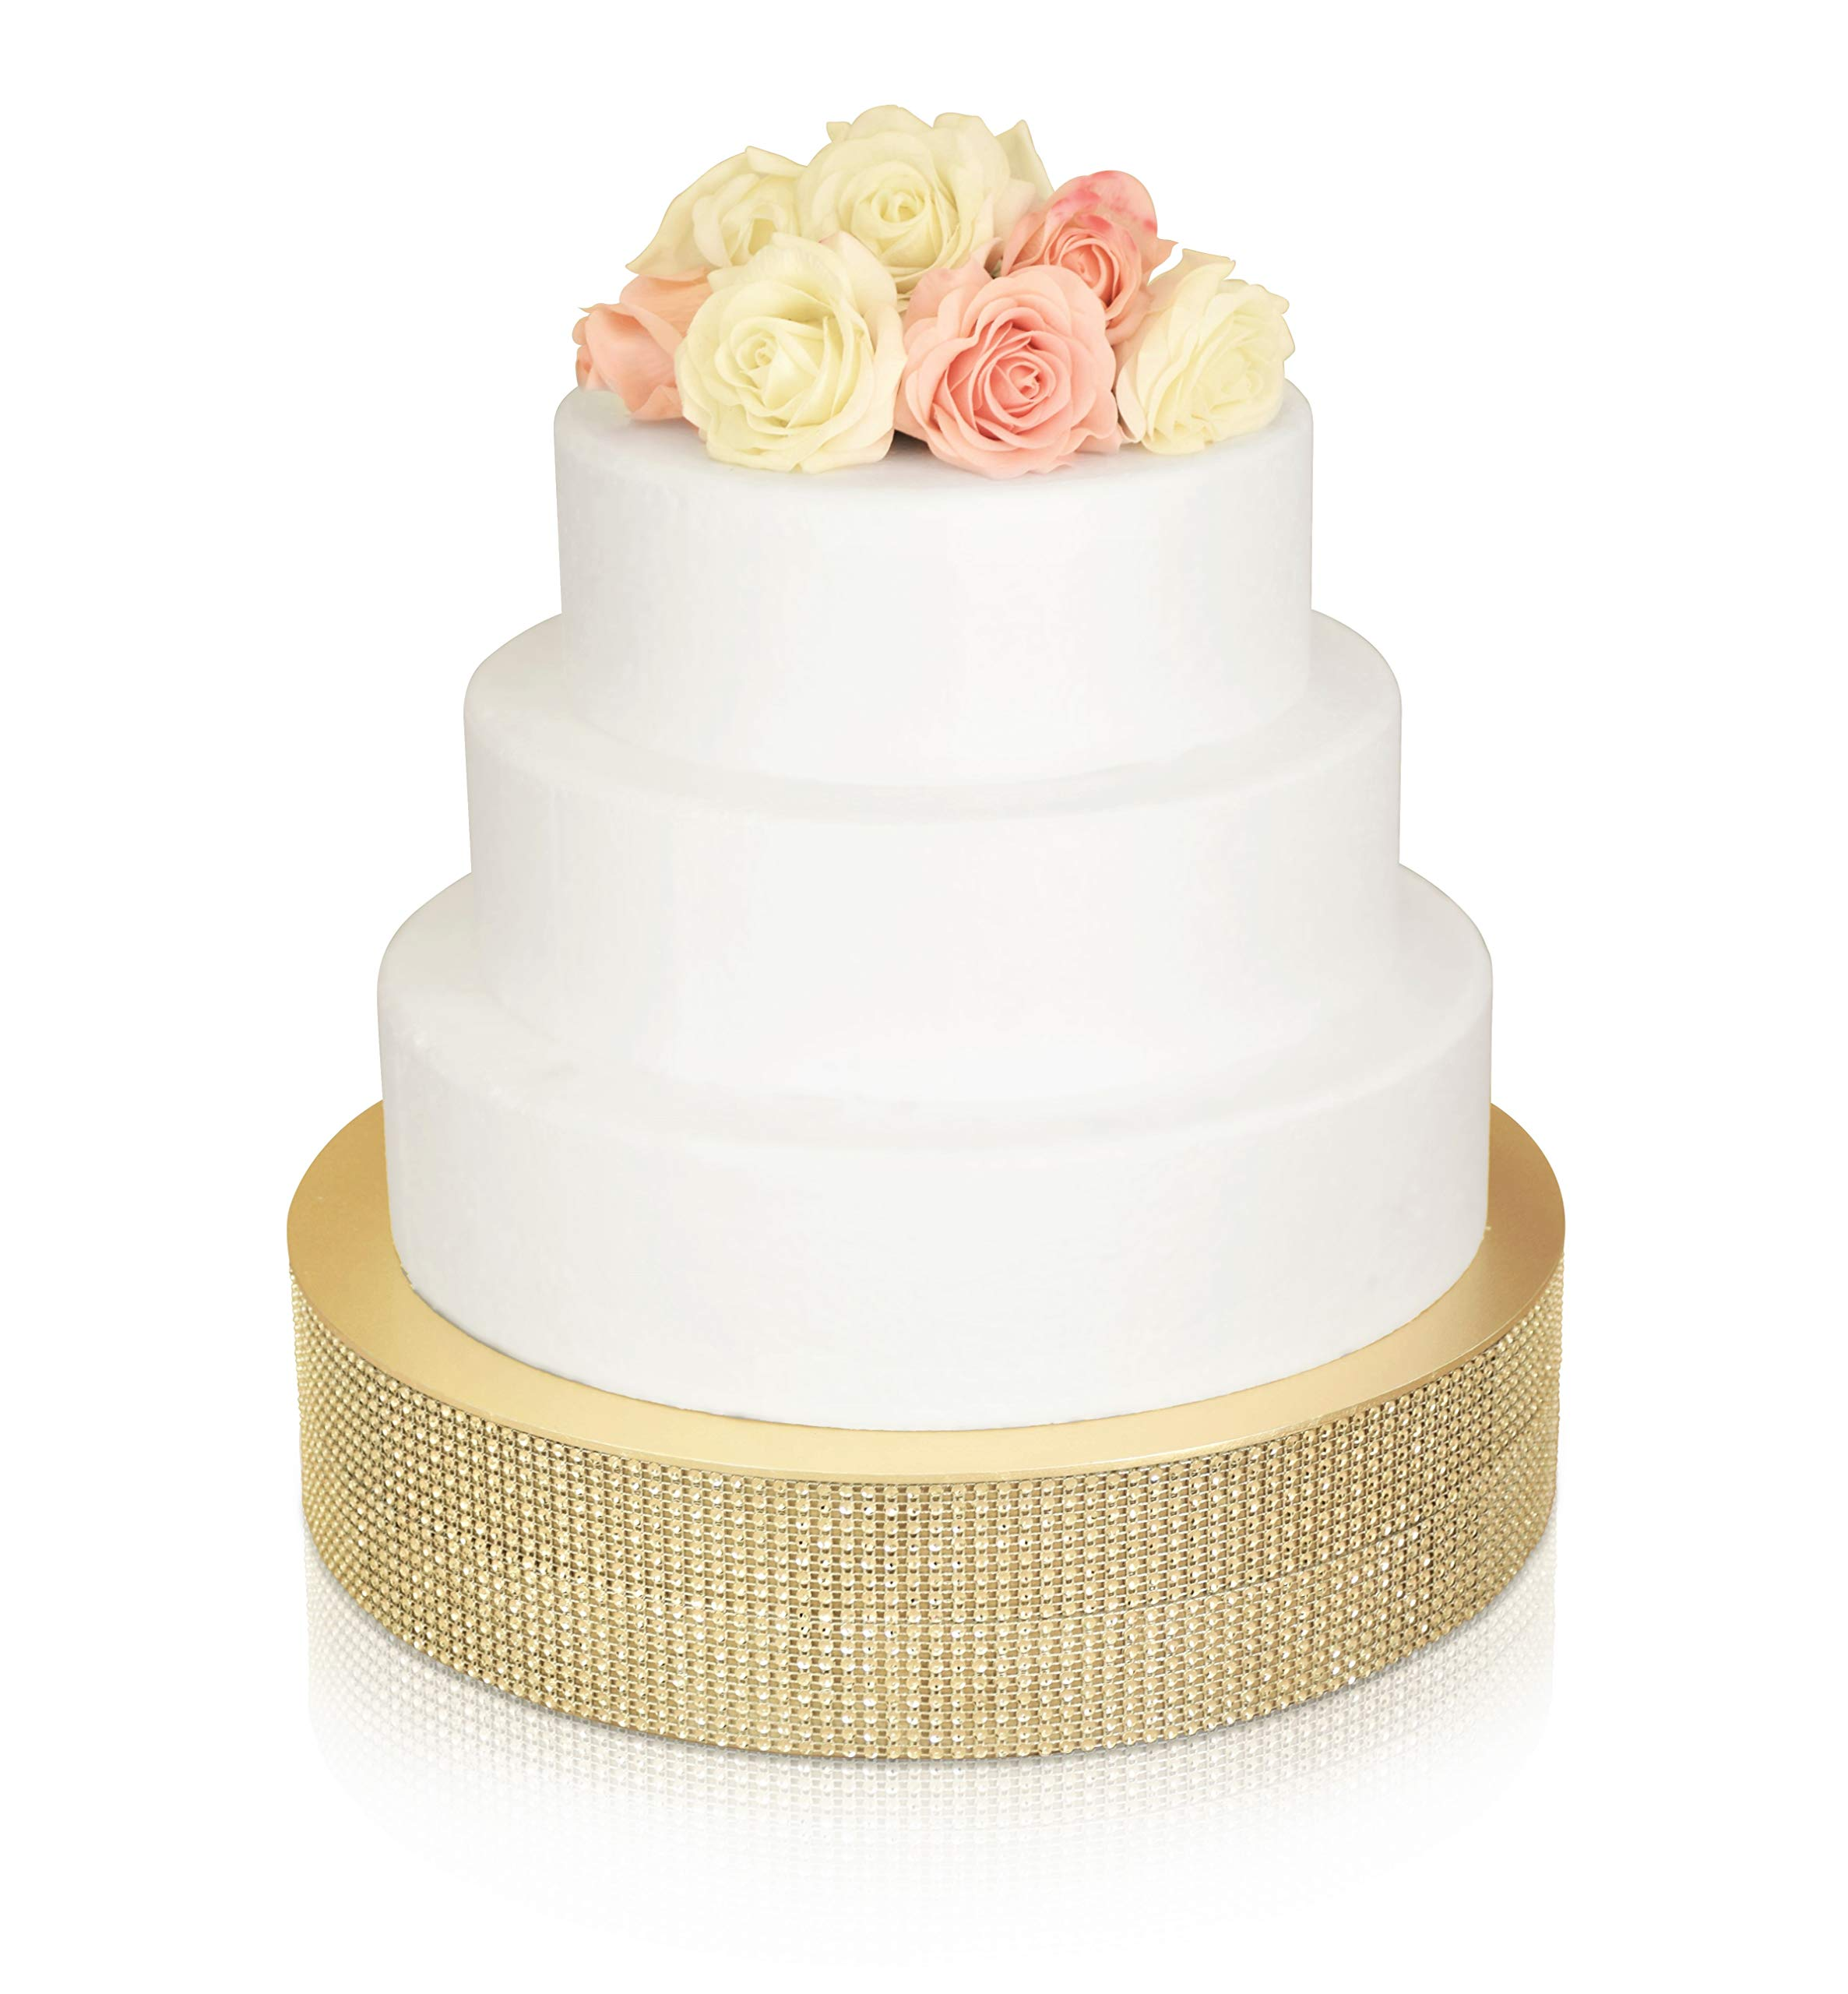 '' OCCASIONS'' Bling Wedding Cake Stand (Holds 150 lbs), Cupcake Base, Decorative Party Centerpiece (18'' Round, Soft Gold)